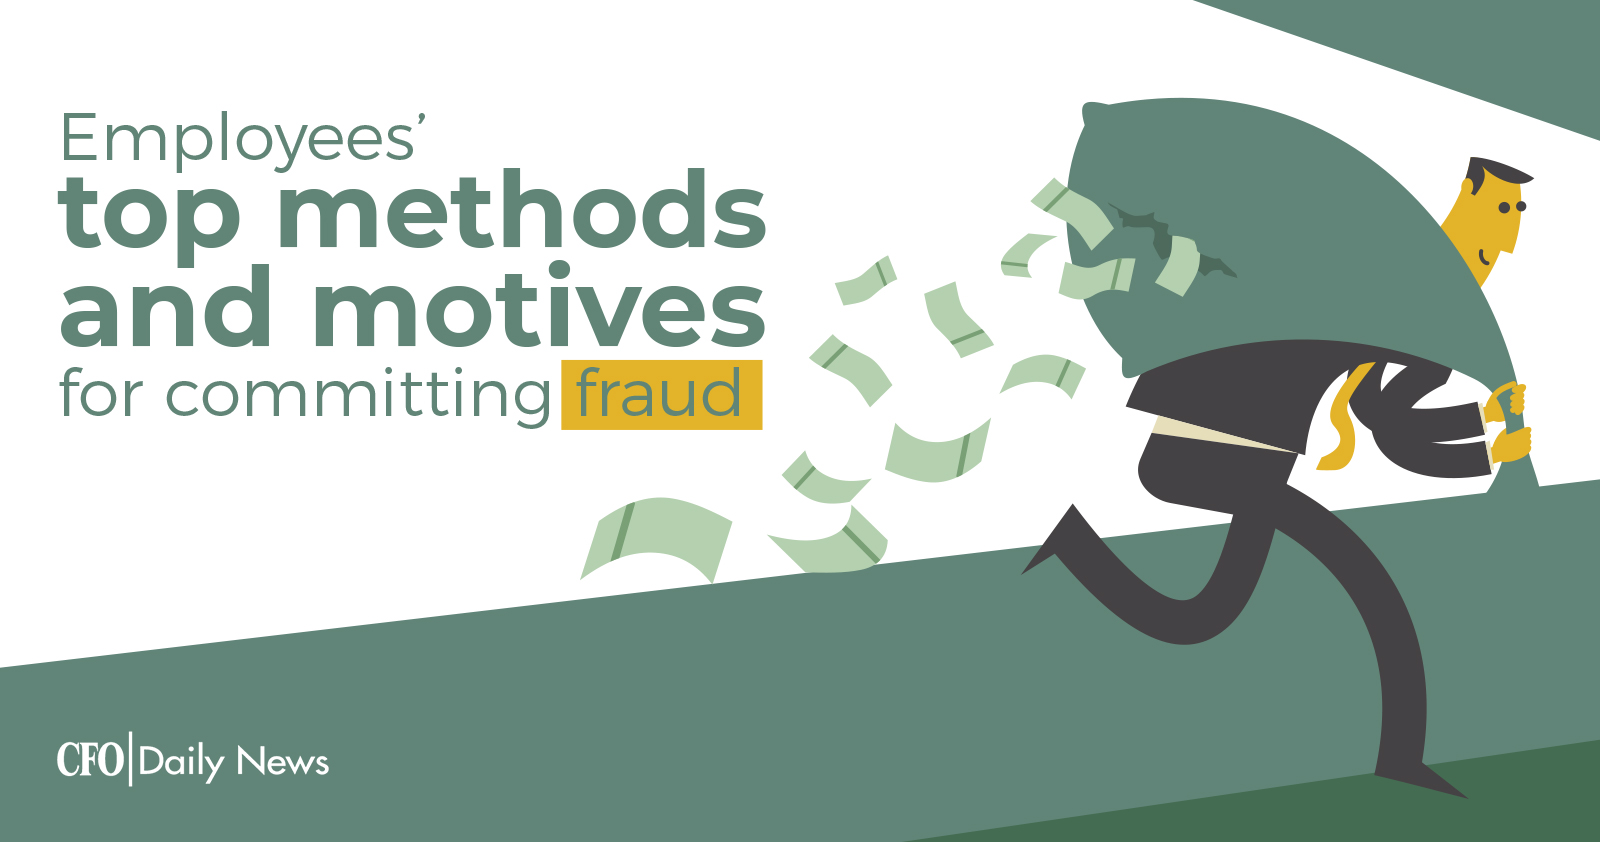 employees top methods and motives for committing fraud